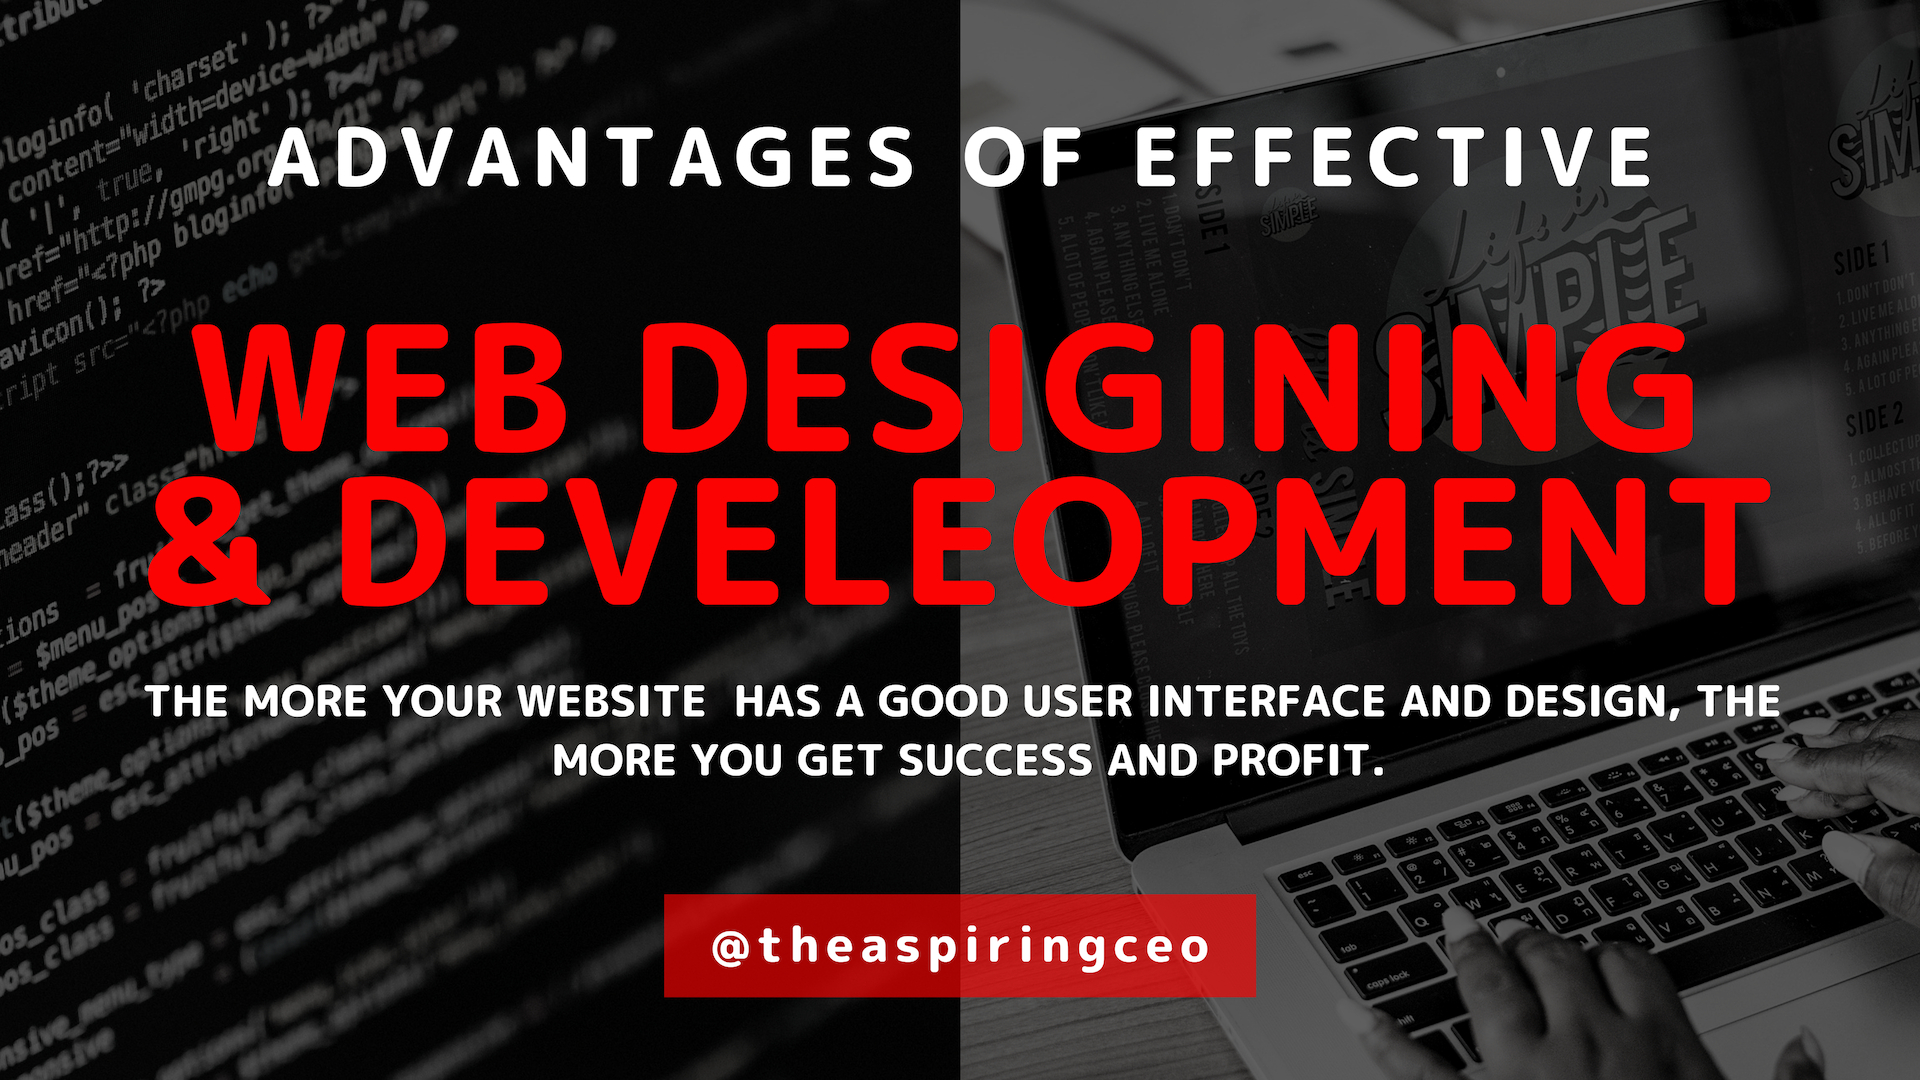 ADVANTAGES OF EFFECTIVE WEB DESIGNING AND DEVELOPMENT